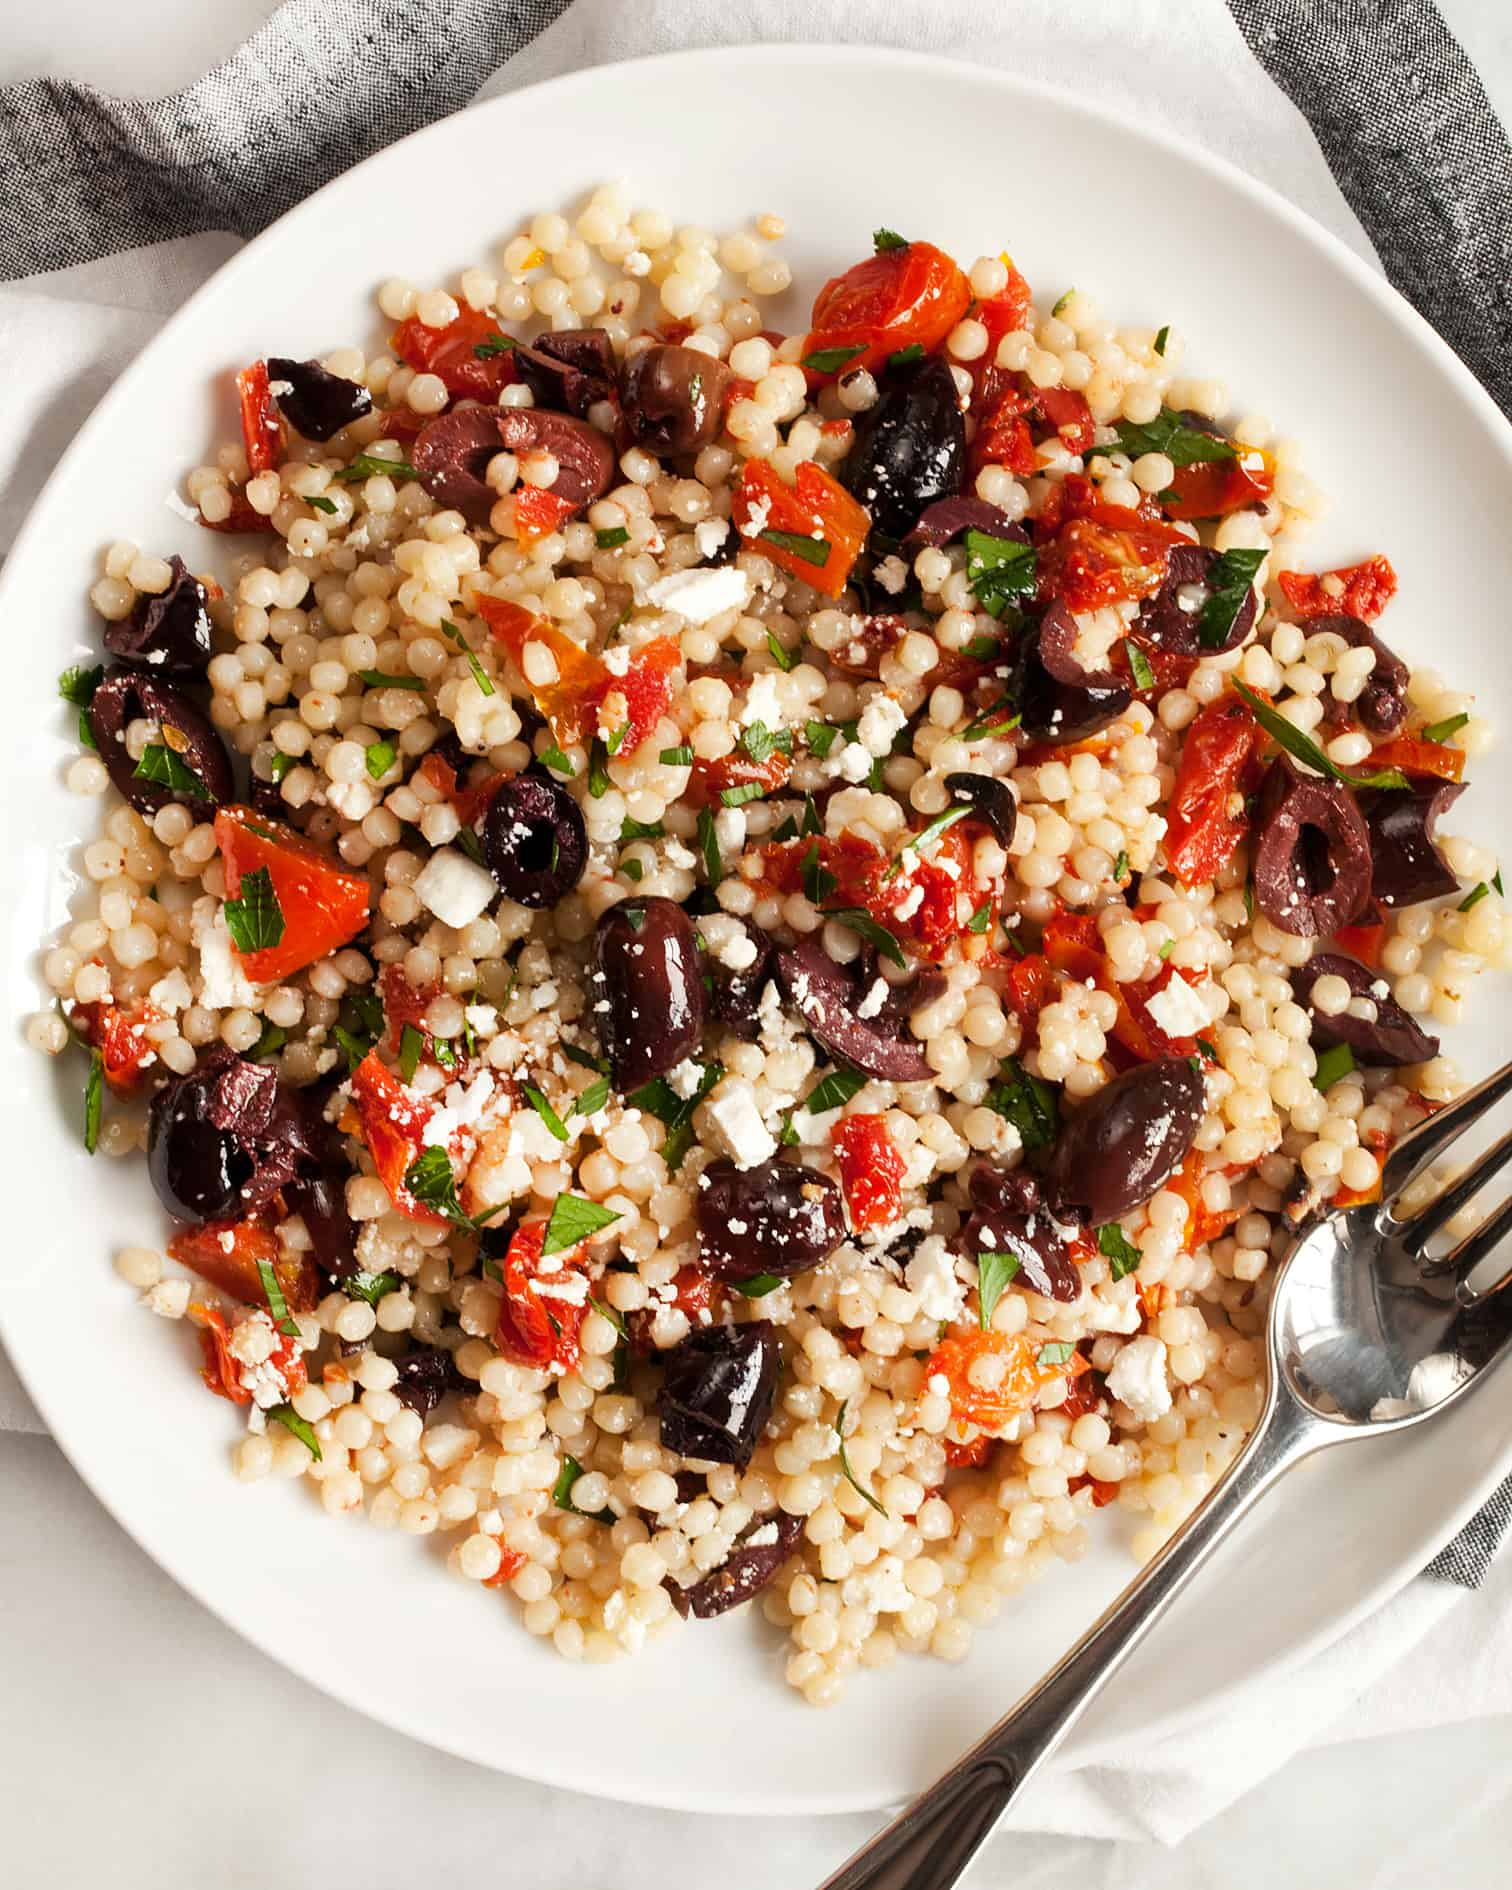 Sun-Dried Tomato & Olive Couscous